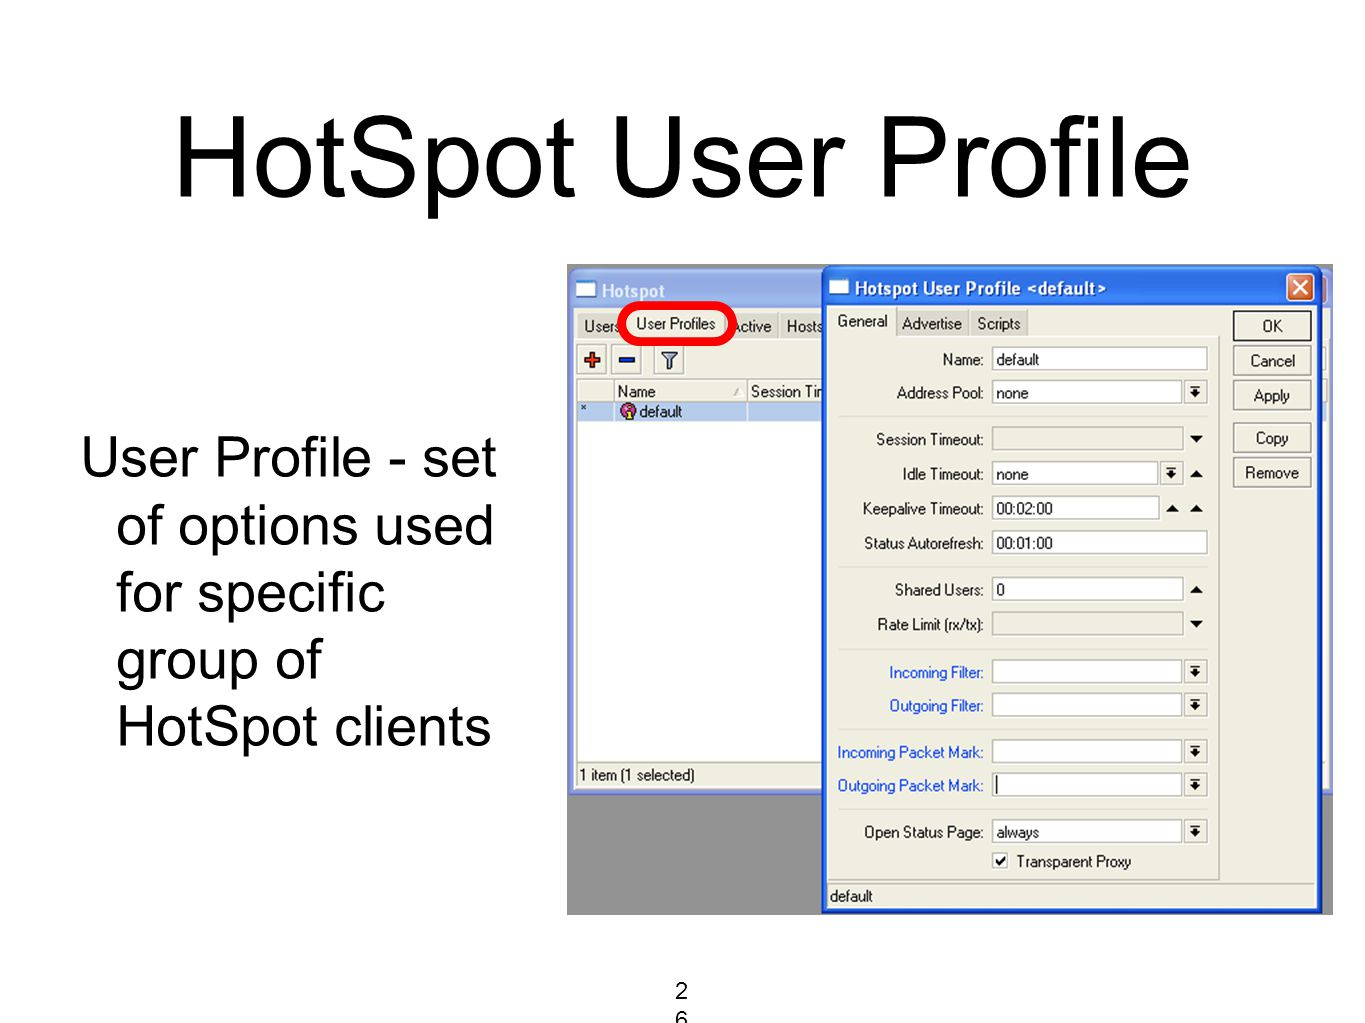 HotSpot User Profile User Profile - set of options used for specific group of HotSpot clients 264264264